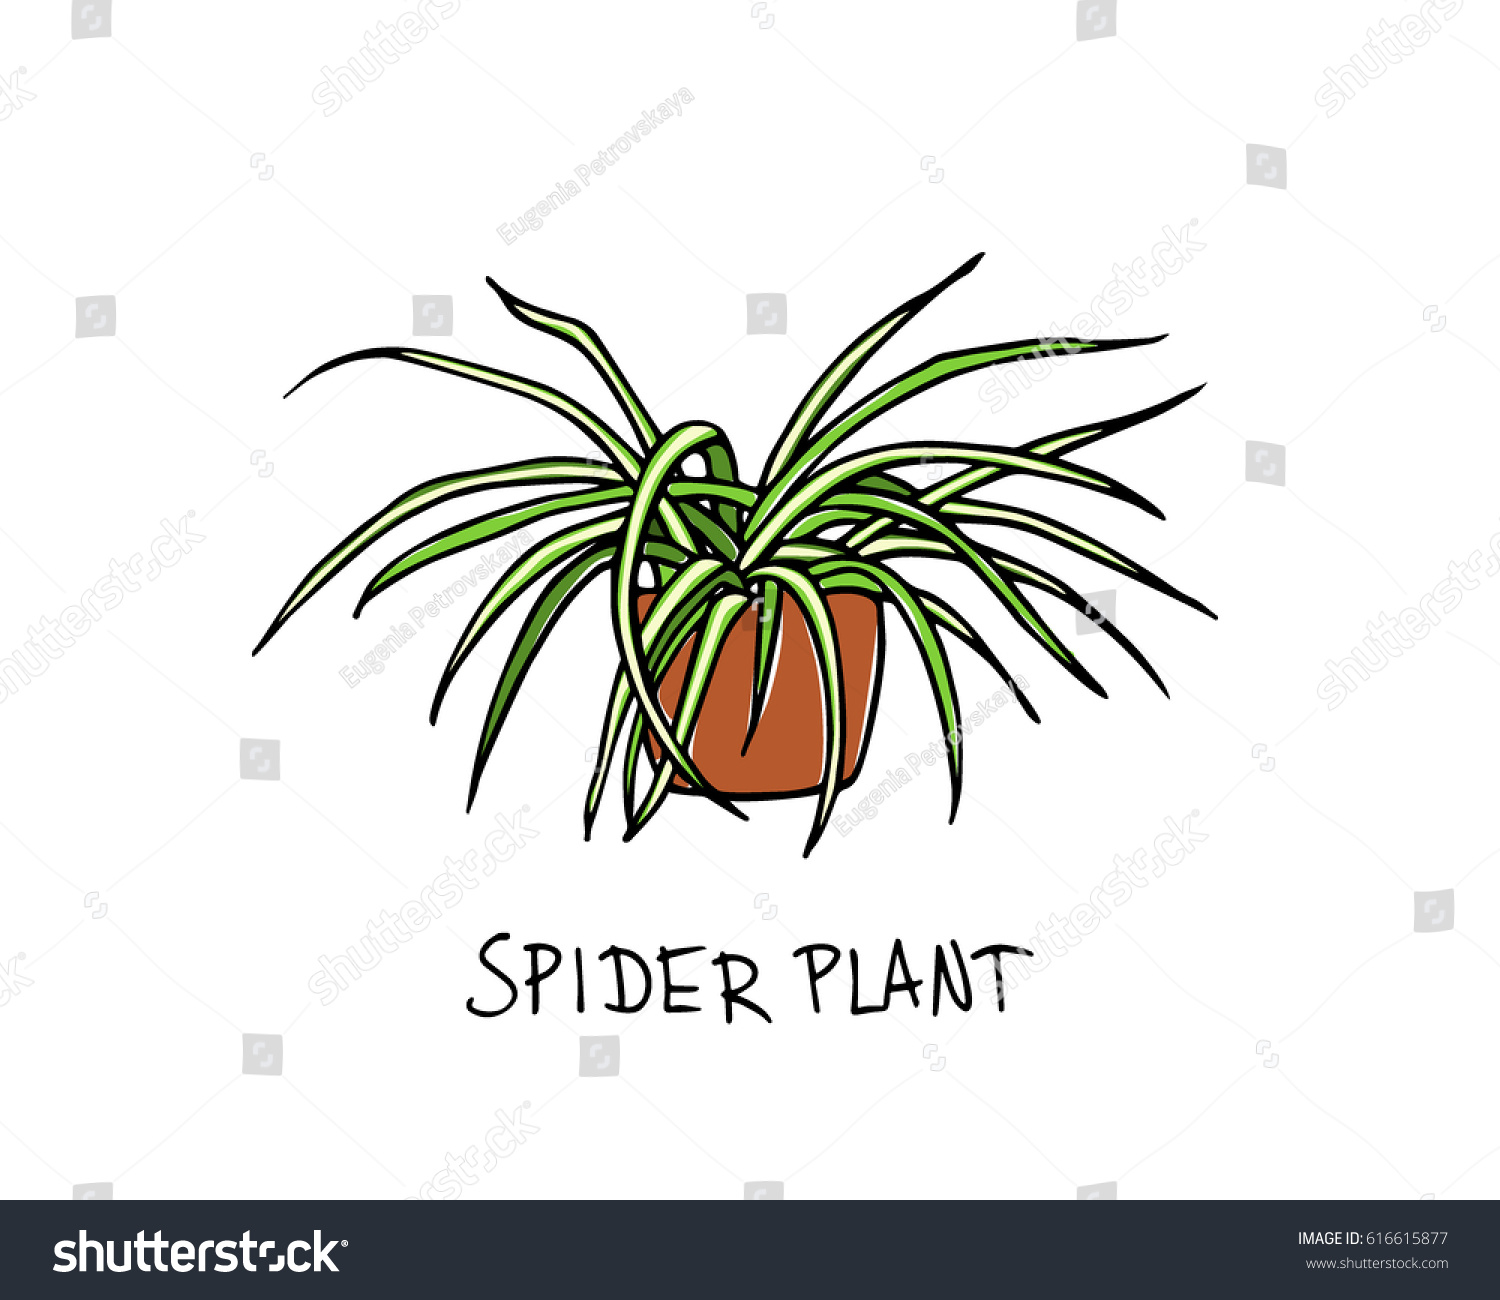 Vector Illustration Hand Drawn Spider Plant Stock Vector Royalty Free 616615877